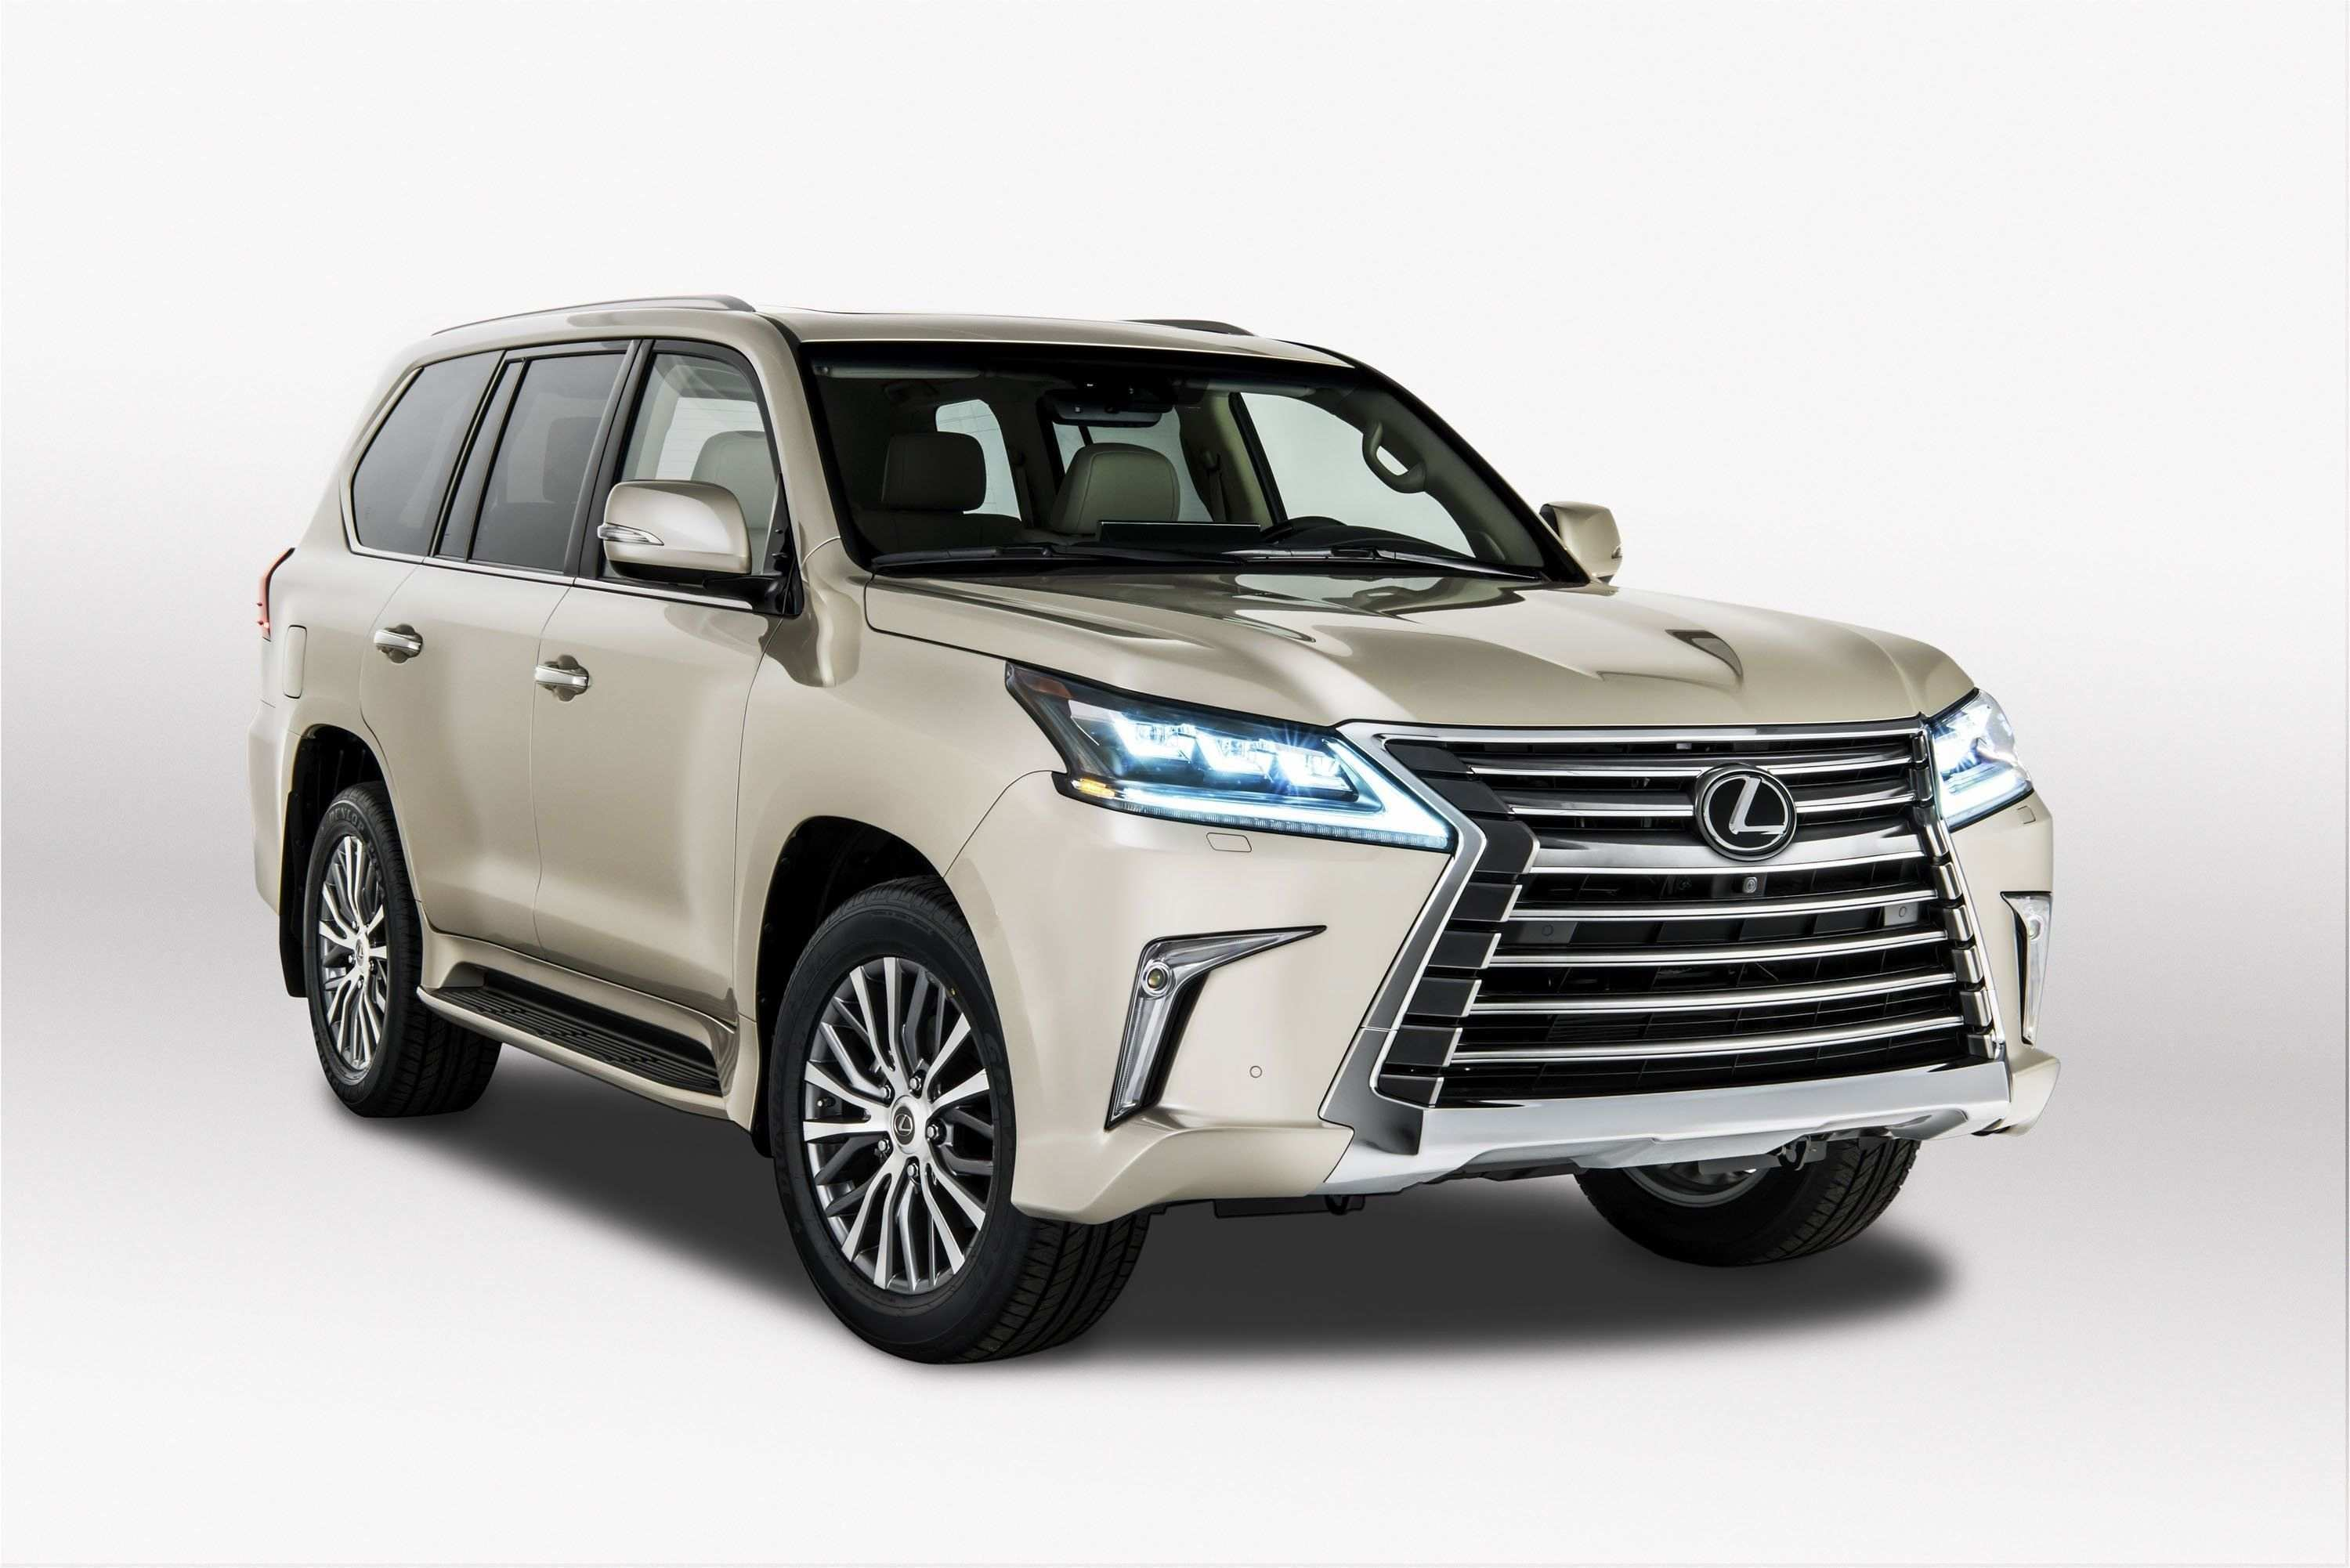 65 All New Lexus 2019 Gx Redesign First Drive Engine with Lexus 2019 Gx Redesign First Drive